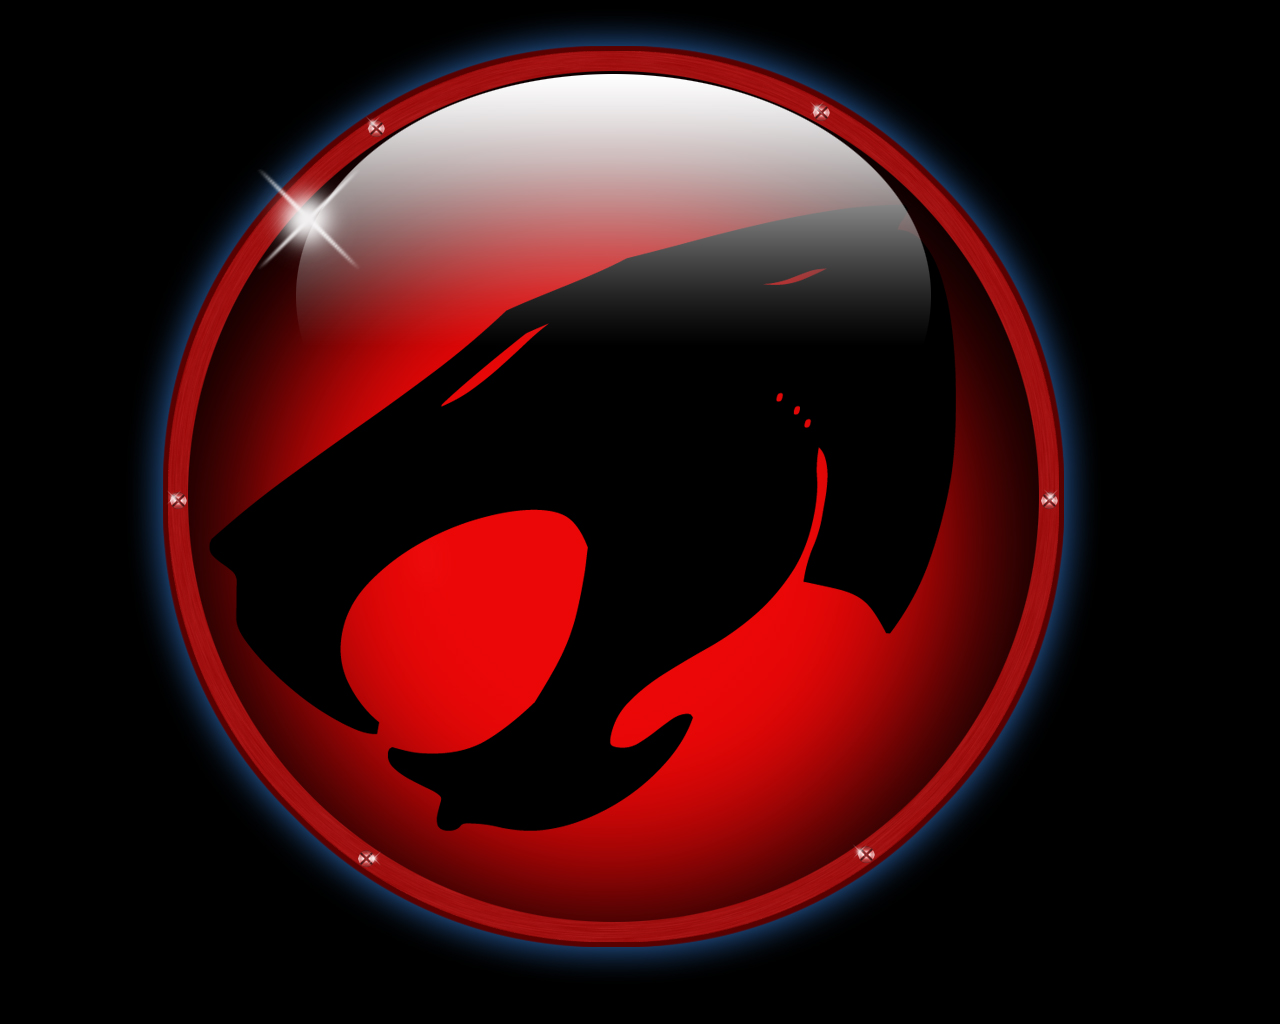 Thundercats Backgrounds on Wallpapers Vista